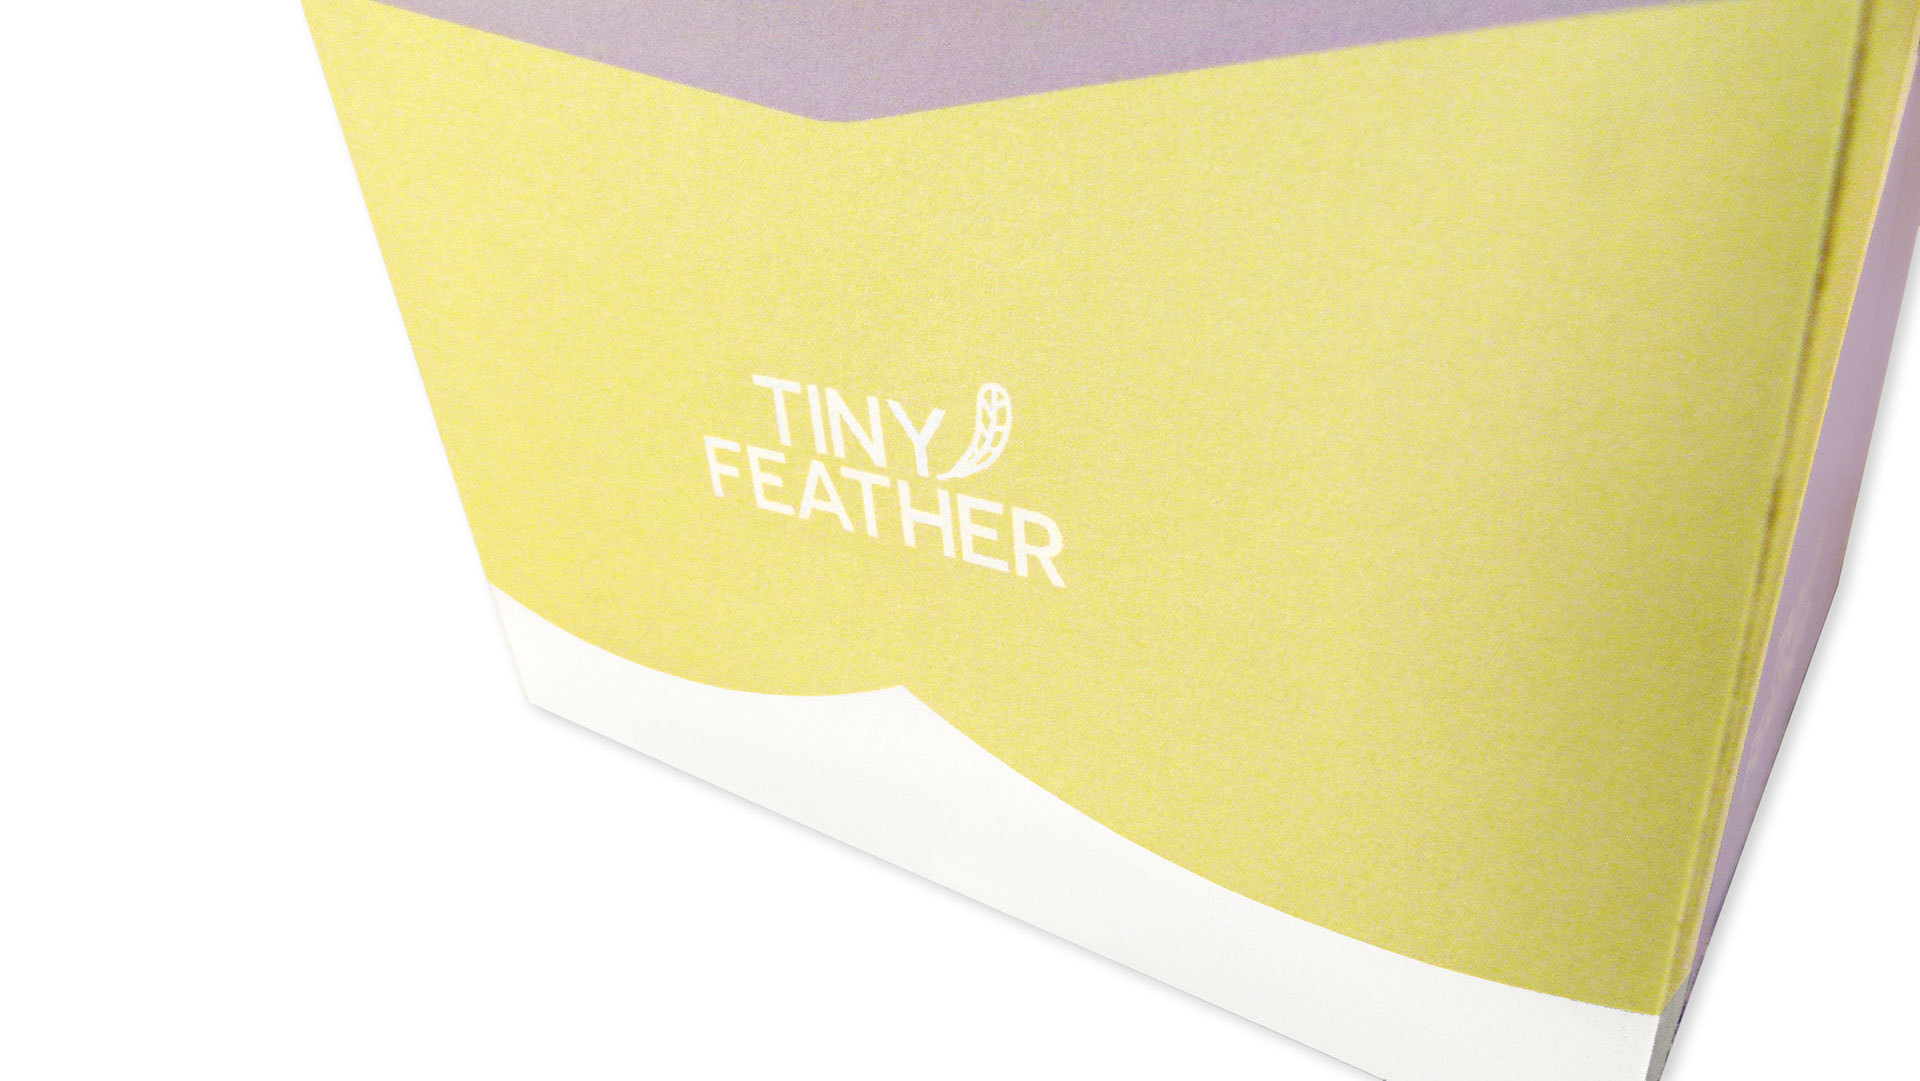 Tiny Feather Tissue Packaging Concept - PaperSpecs